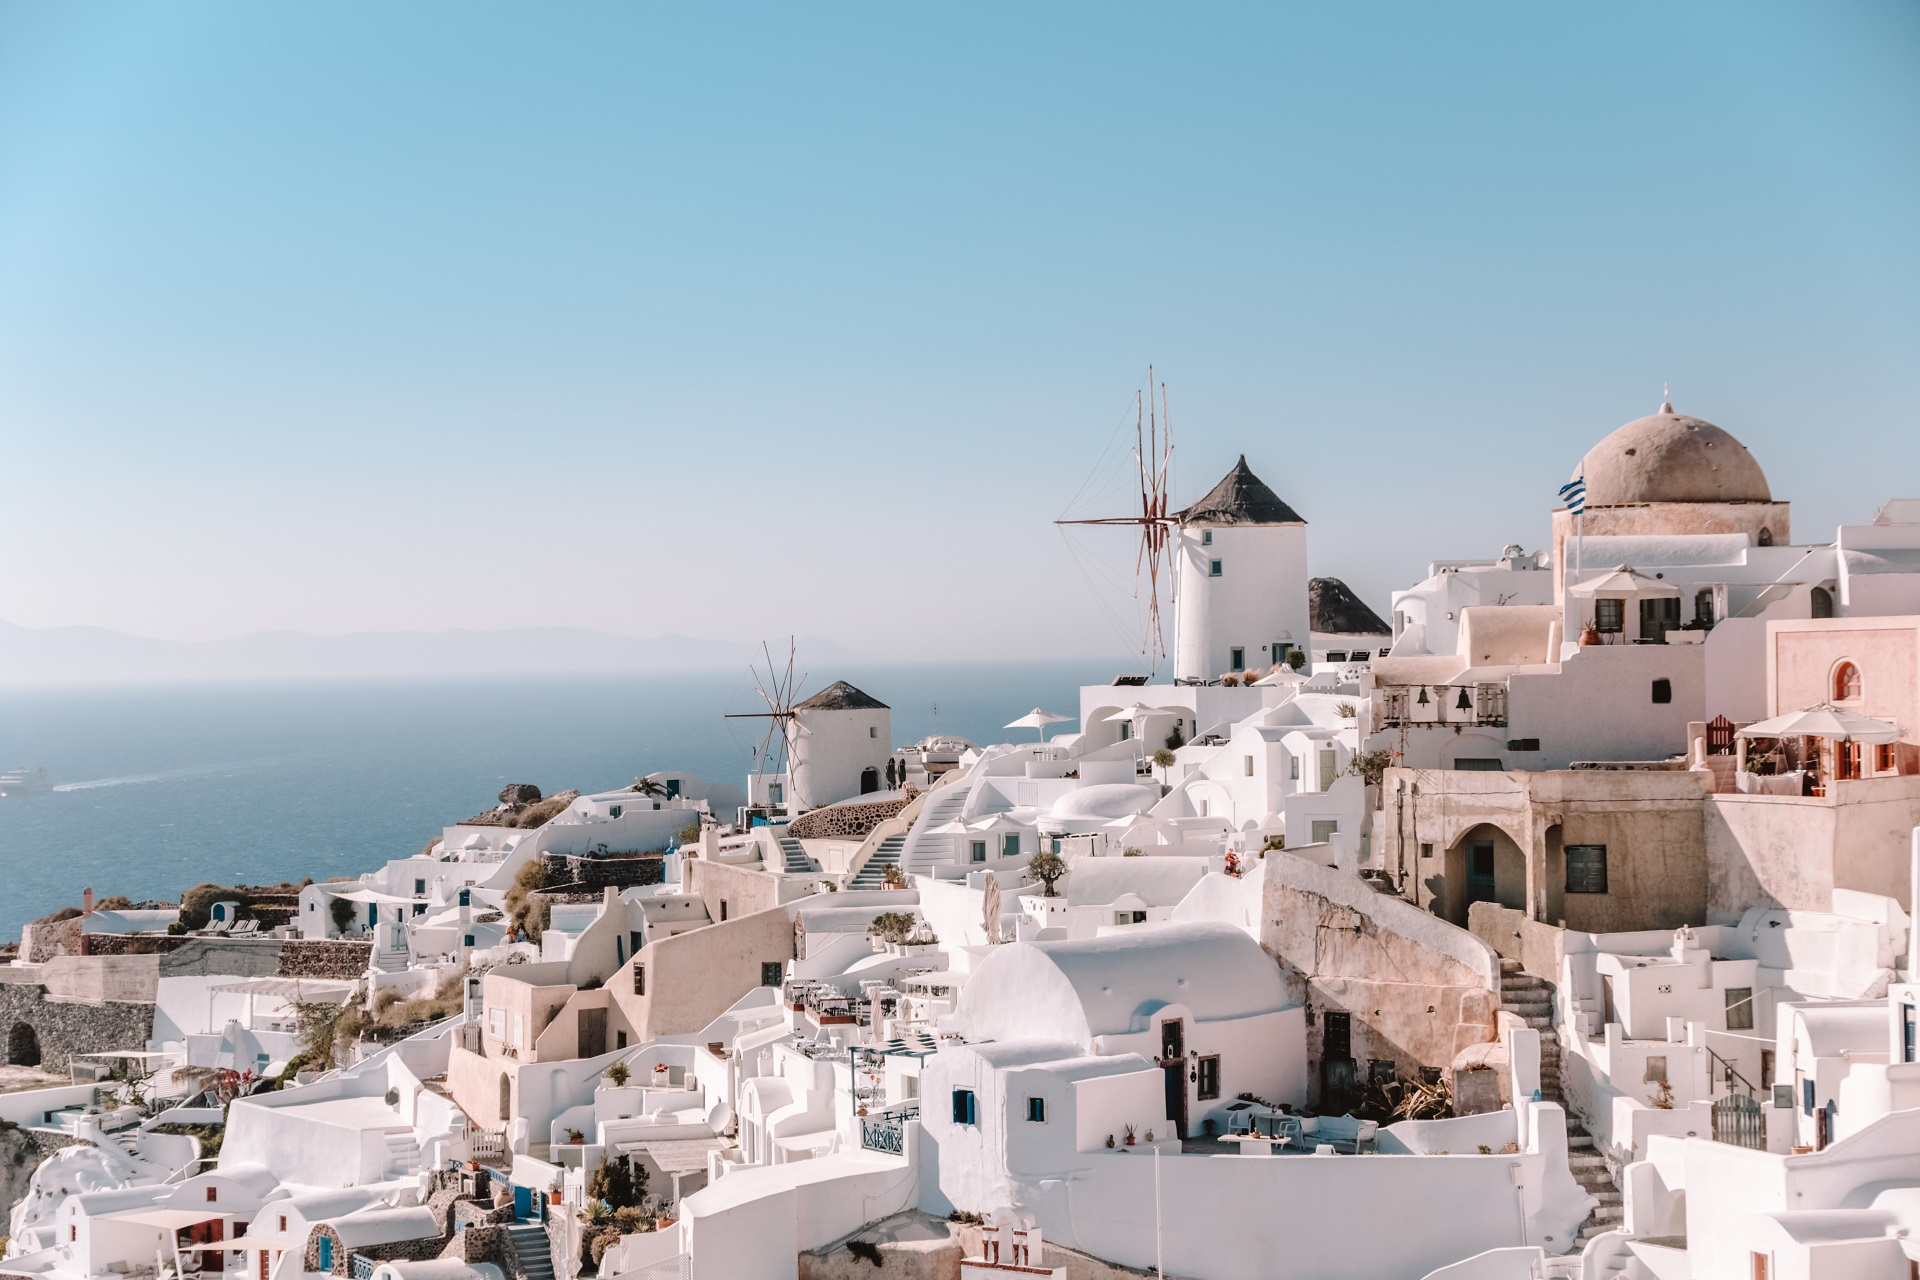 The famous village of Oia